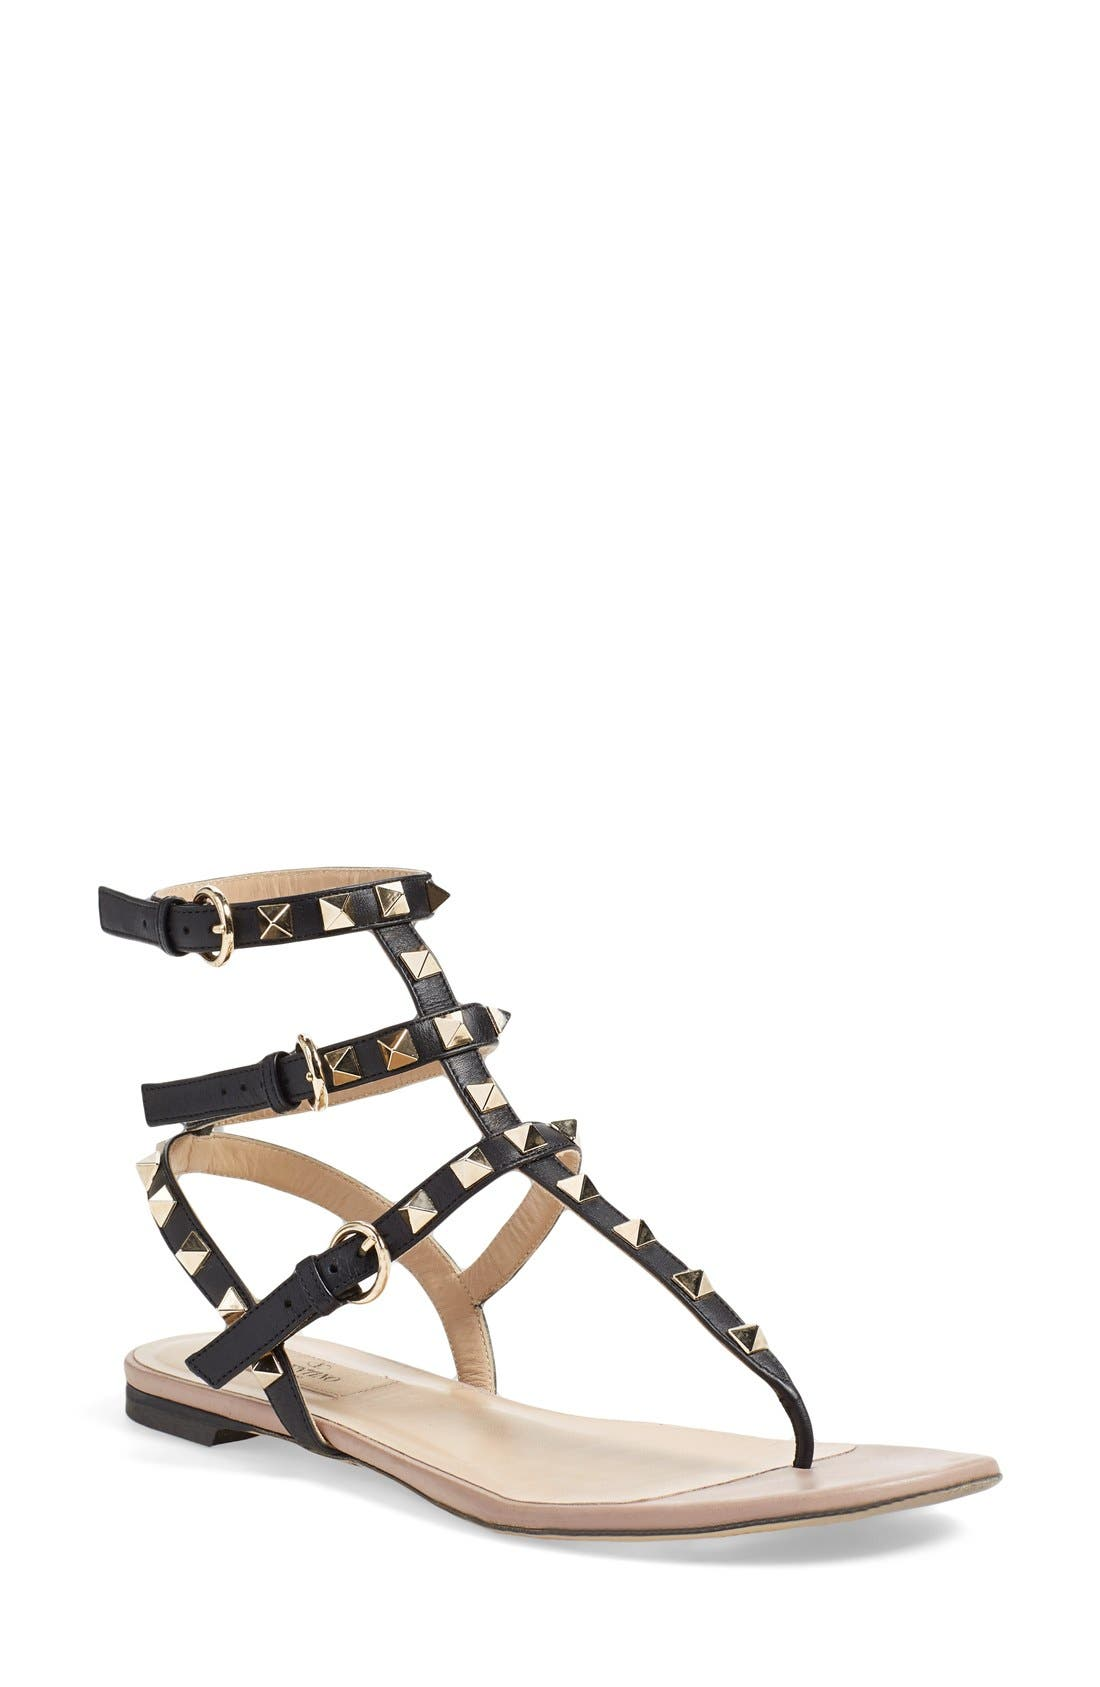 VALENTINO GARAVANI Rockstud Cage Thong, Main, color, BLACK LEATHER